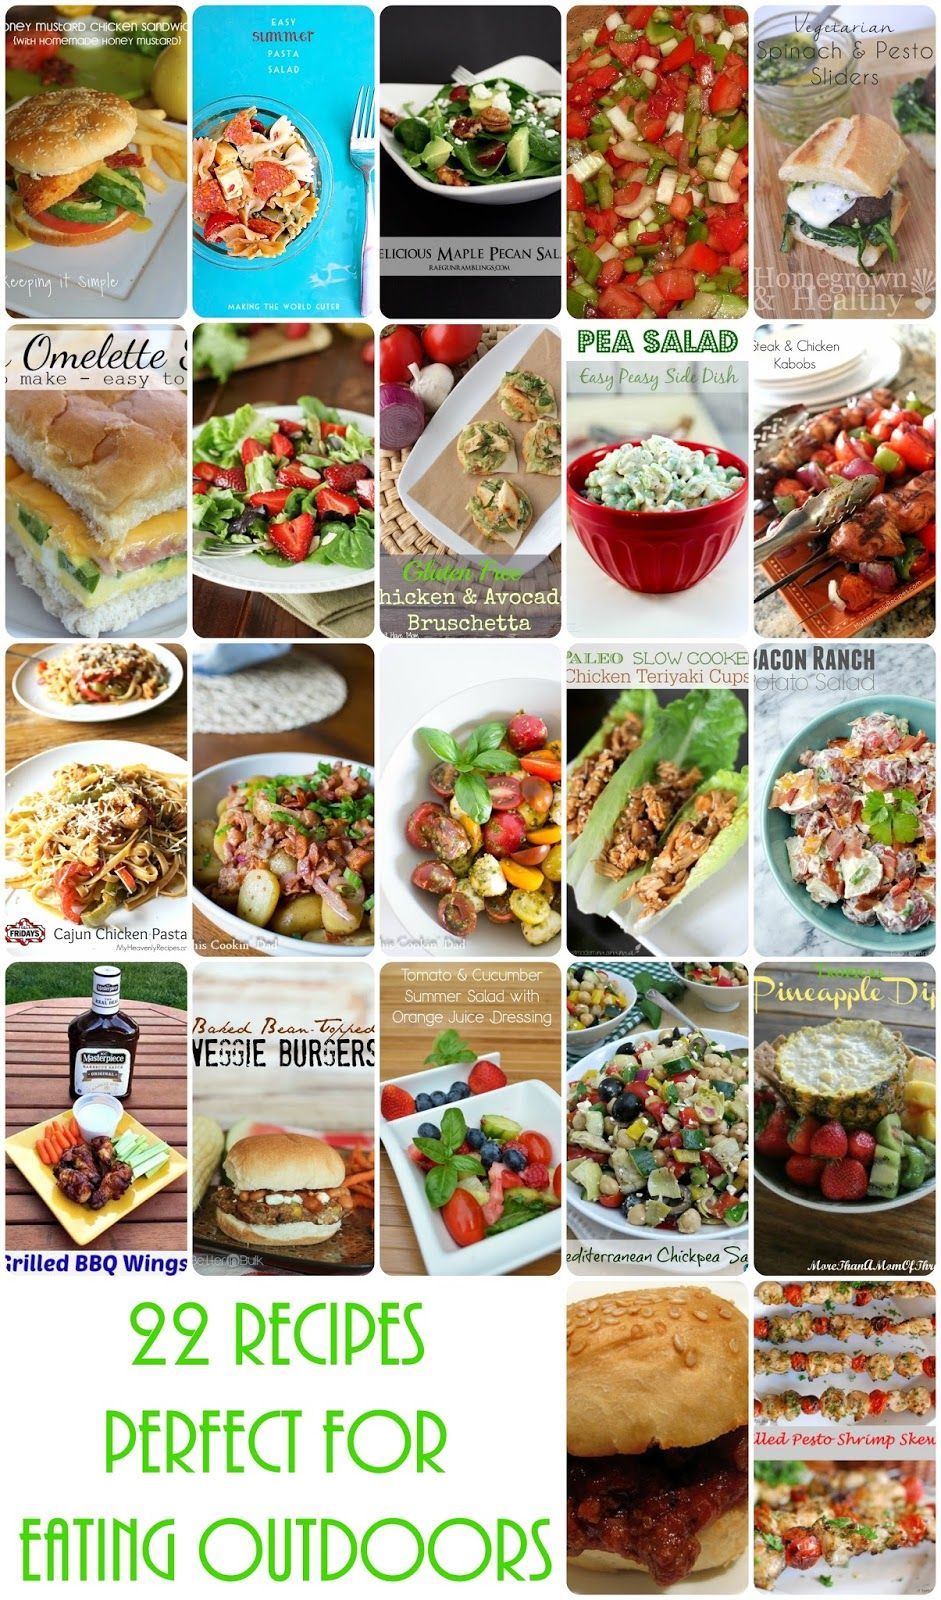 Recipes for Eating Outside